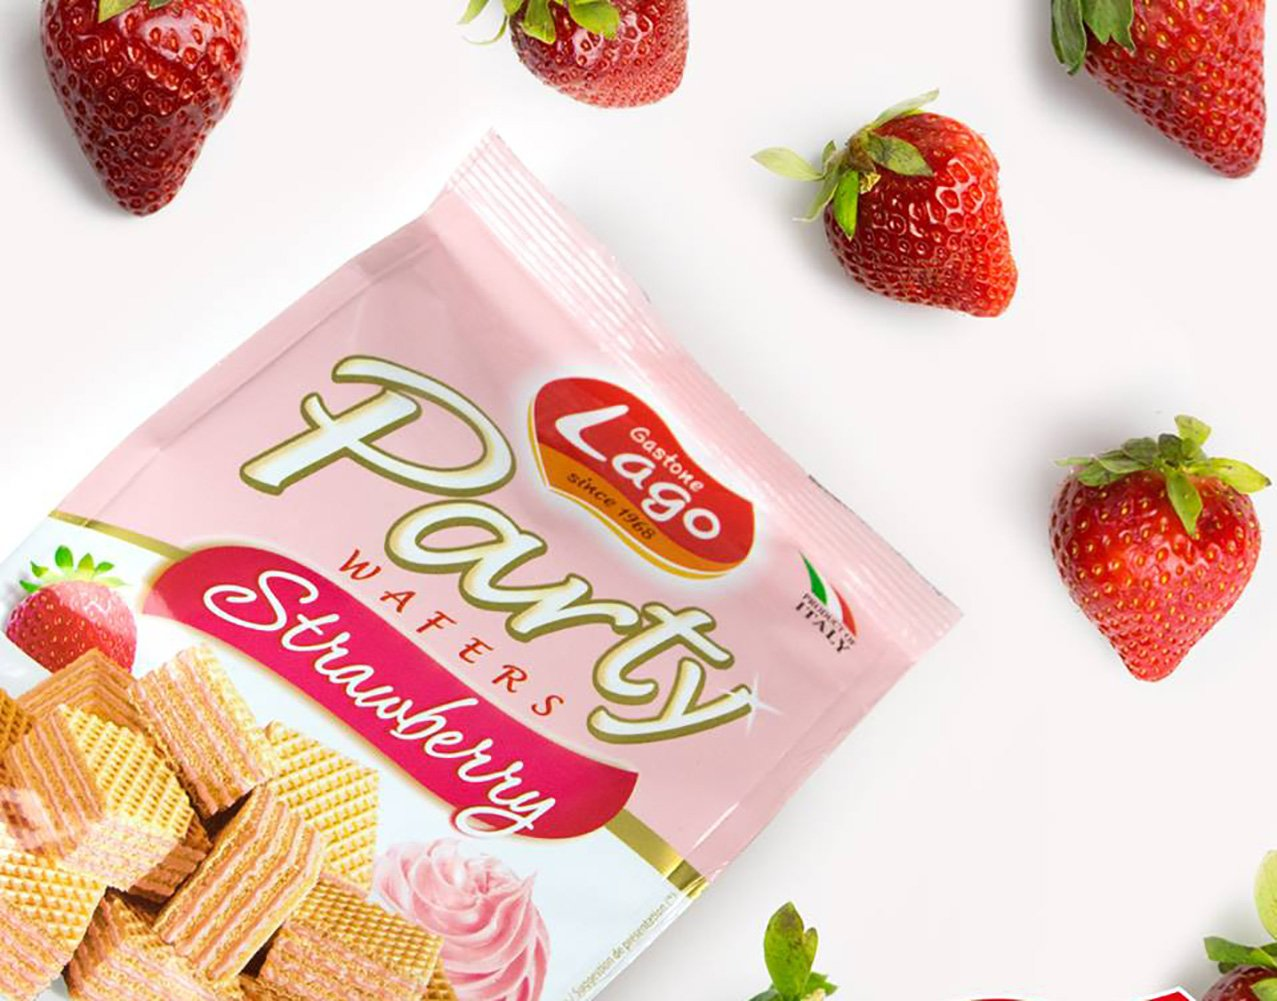 Amazon.com: Gastone Lago Party Variety Wafers Cream Filling 8.82 oz, 250g (Pack of 2) (Vanilla/Strawberry, 2-Pack)